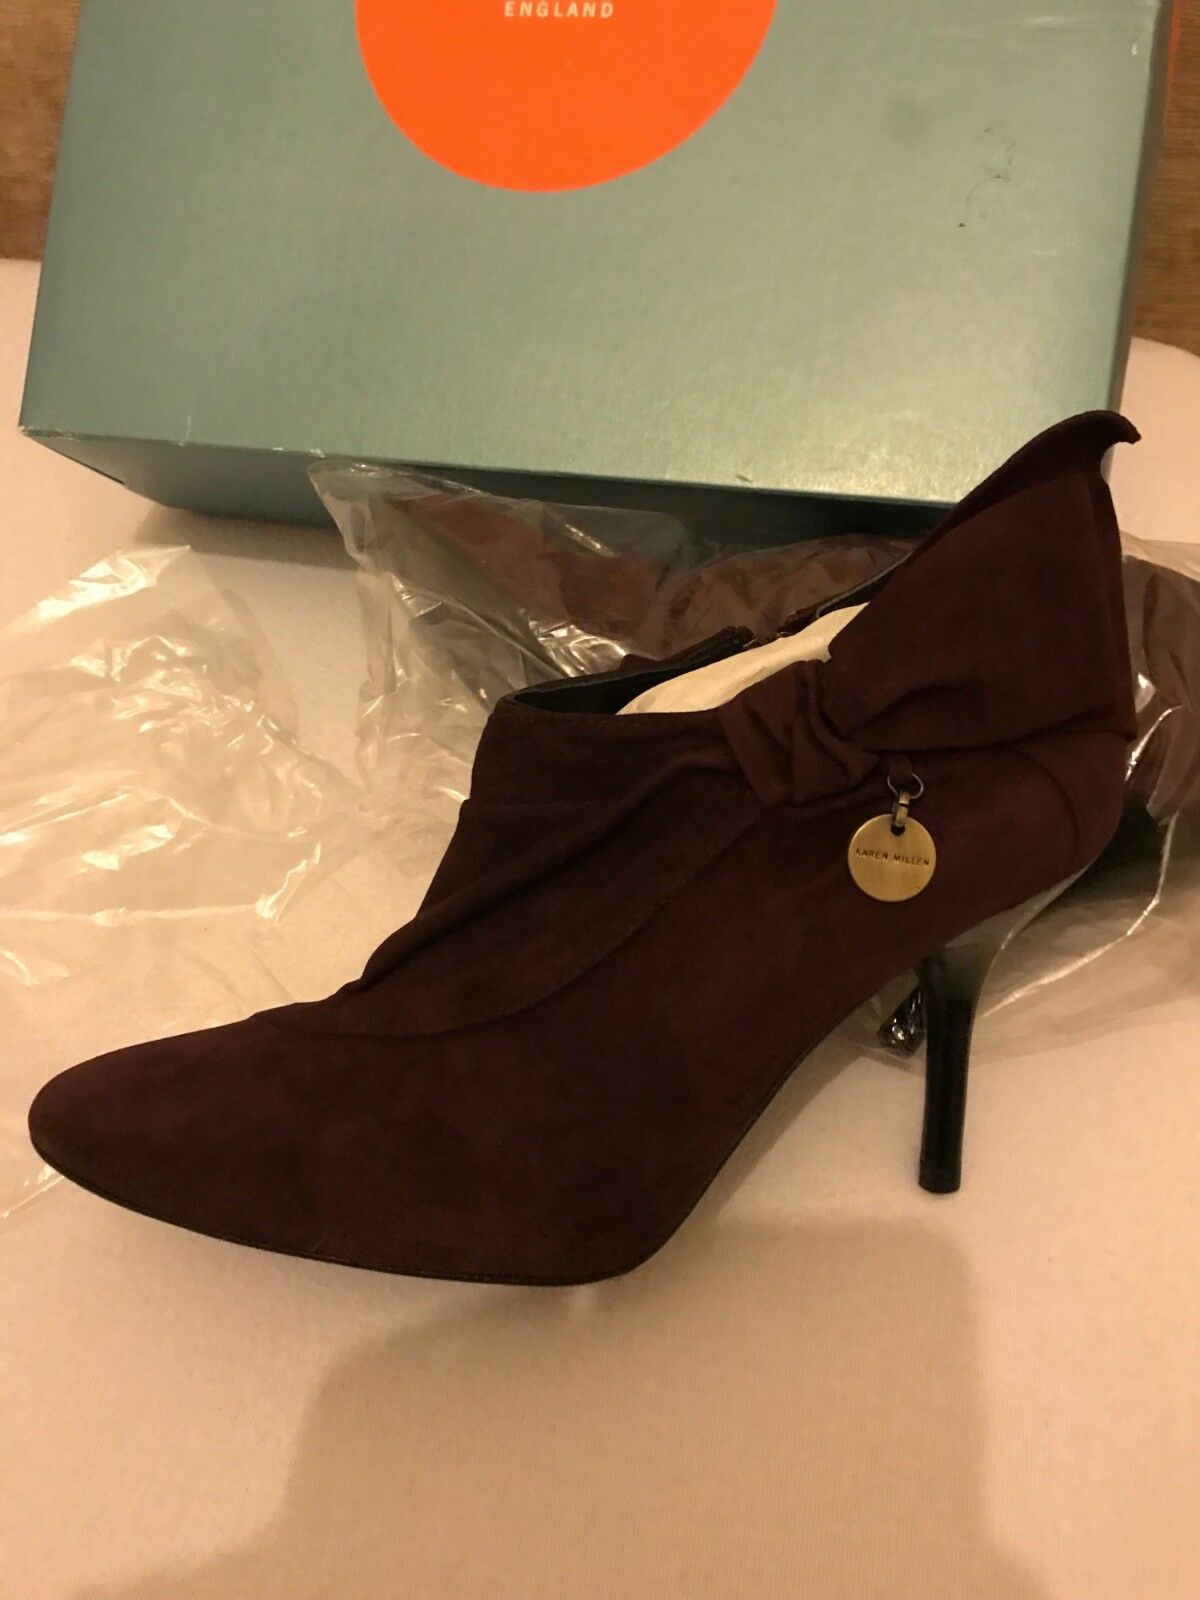 BNIB Karen Millen Plum Burgundy Suede Booties shoes Heels 37.5 (4.5)